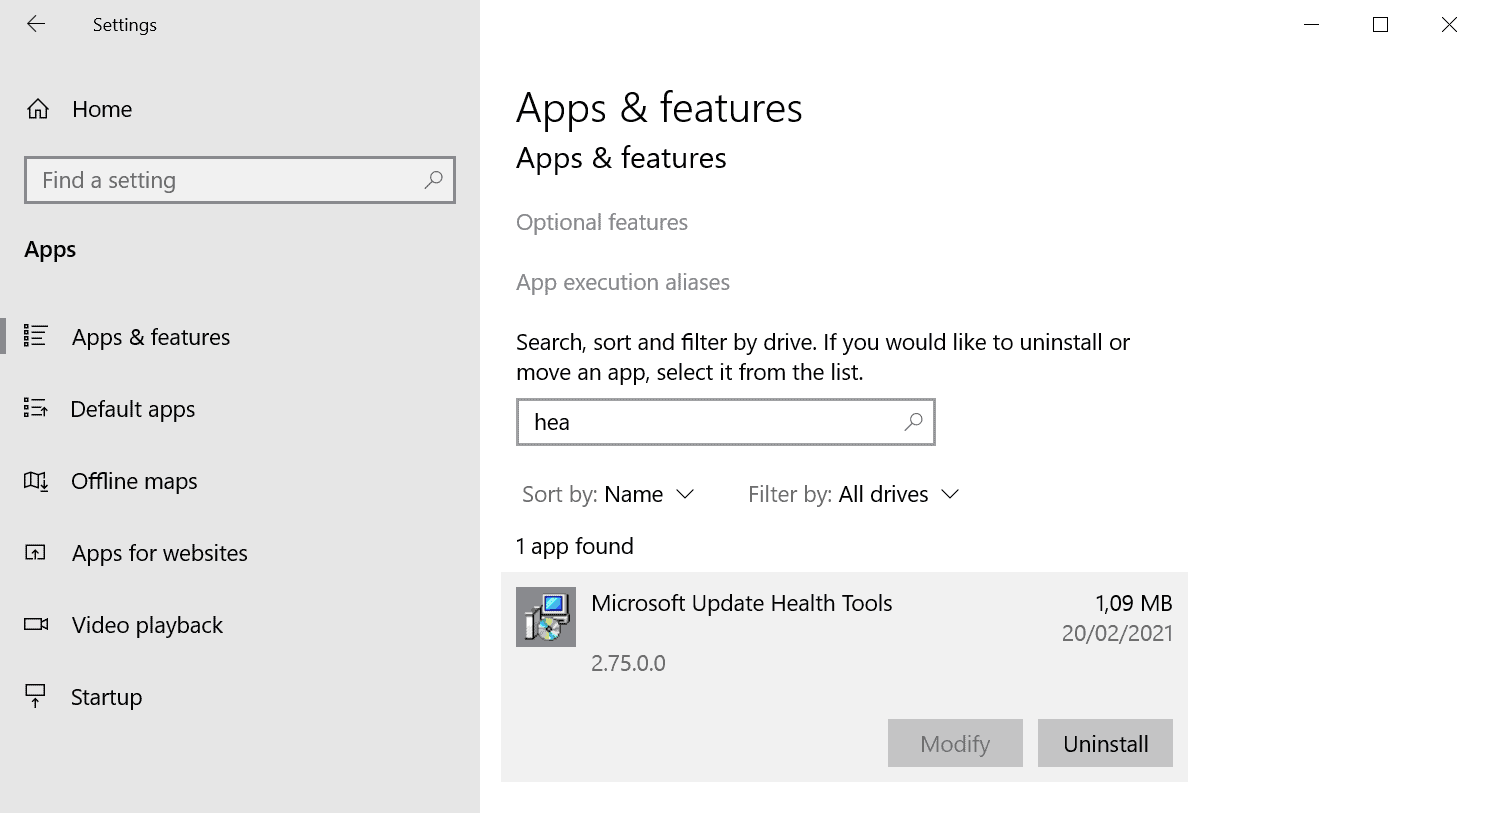 microsoft update health tools